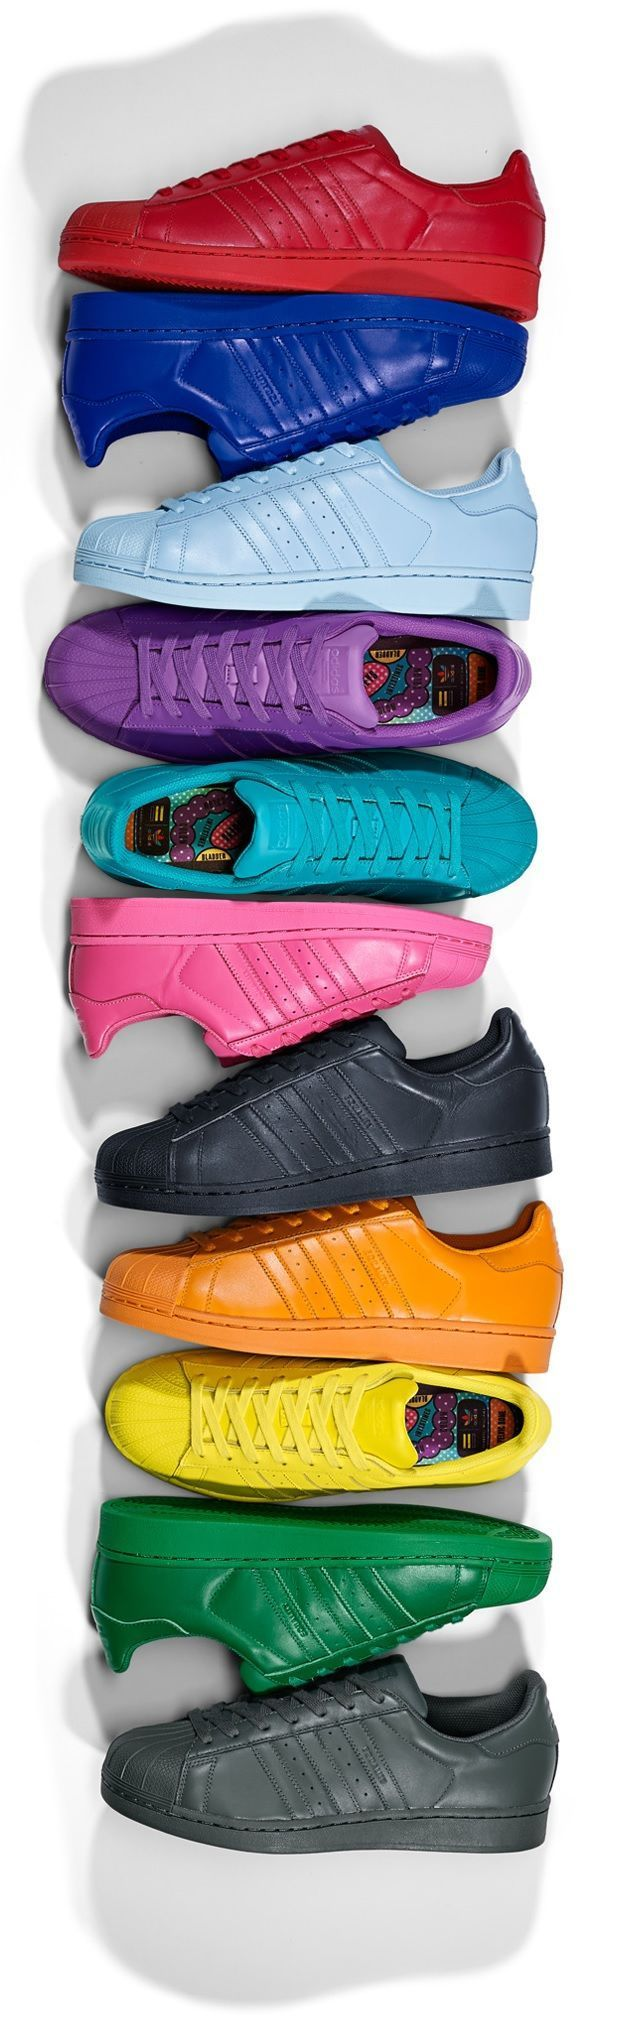 Pharell Williams x adidas Originals Superstar Supercolor Pack. Lookin good all together.